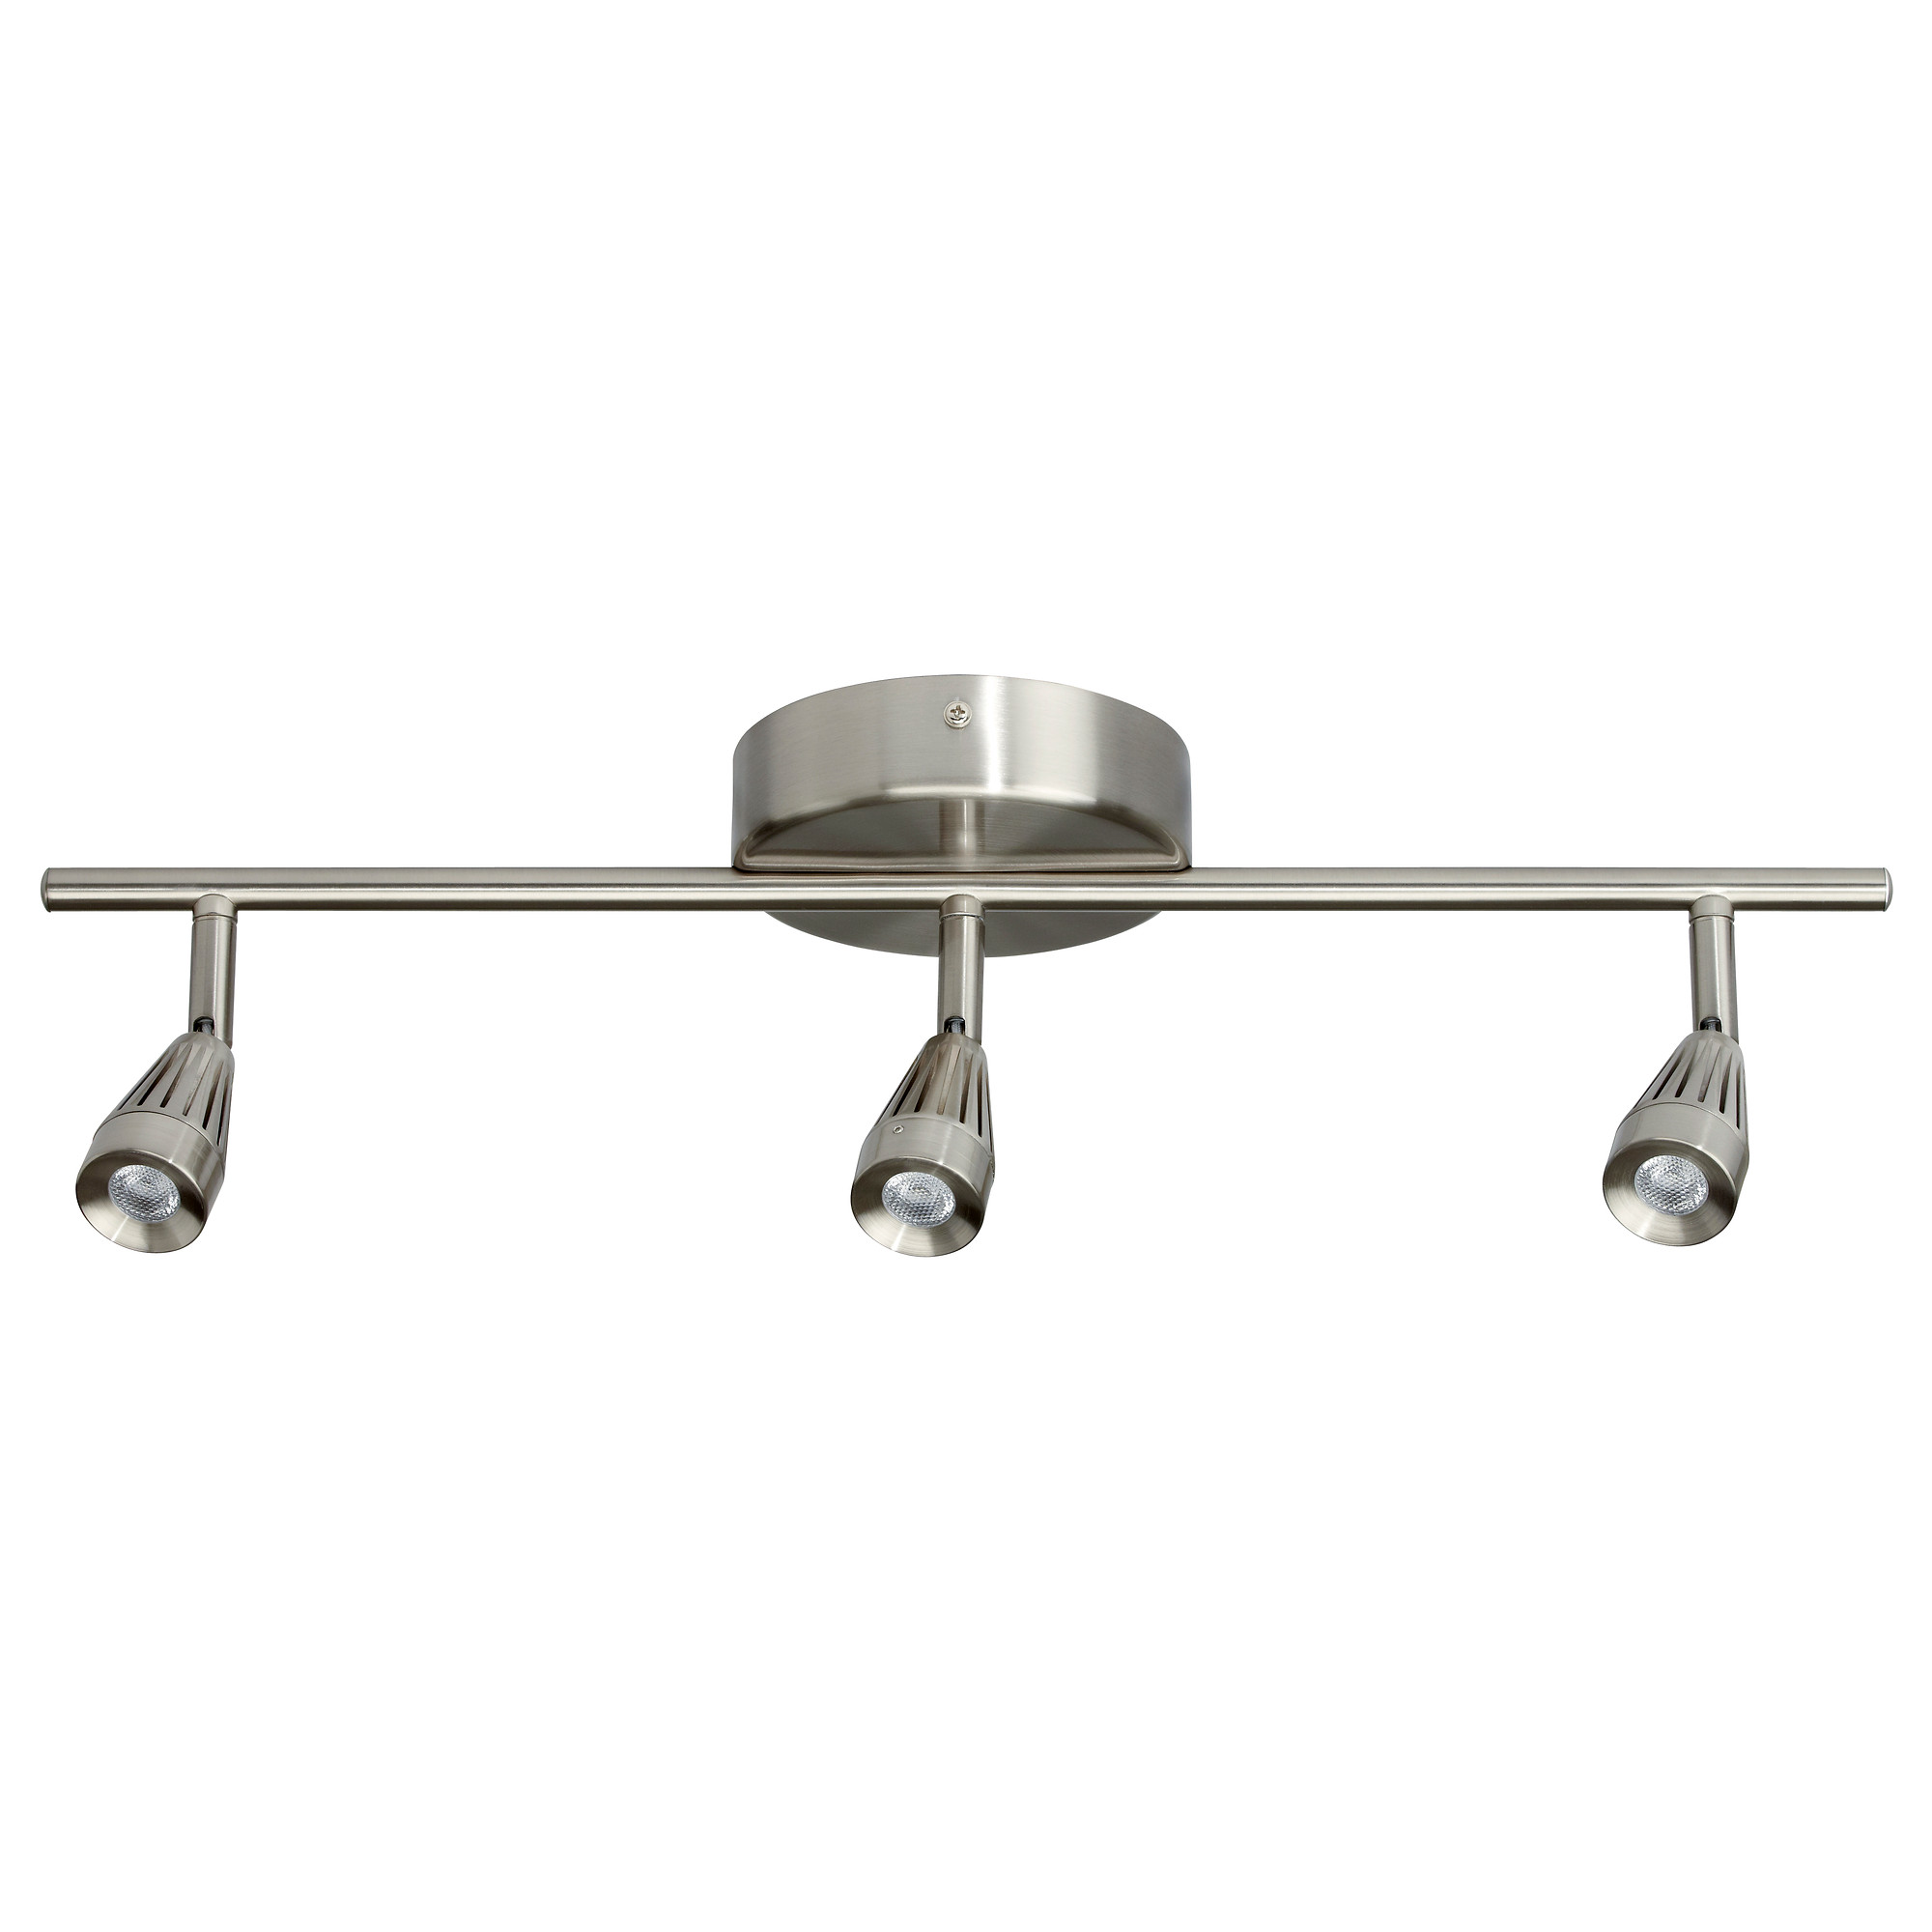 Low Profile Track Lighting That Will Give Sophistication